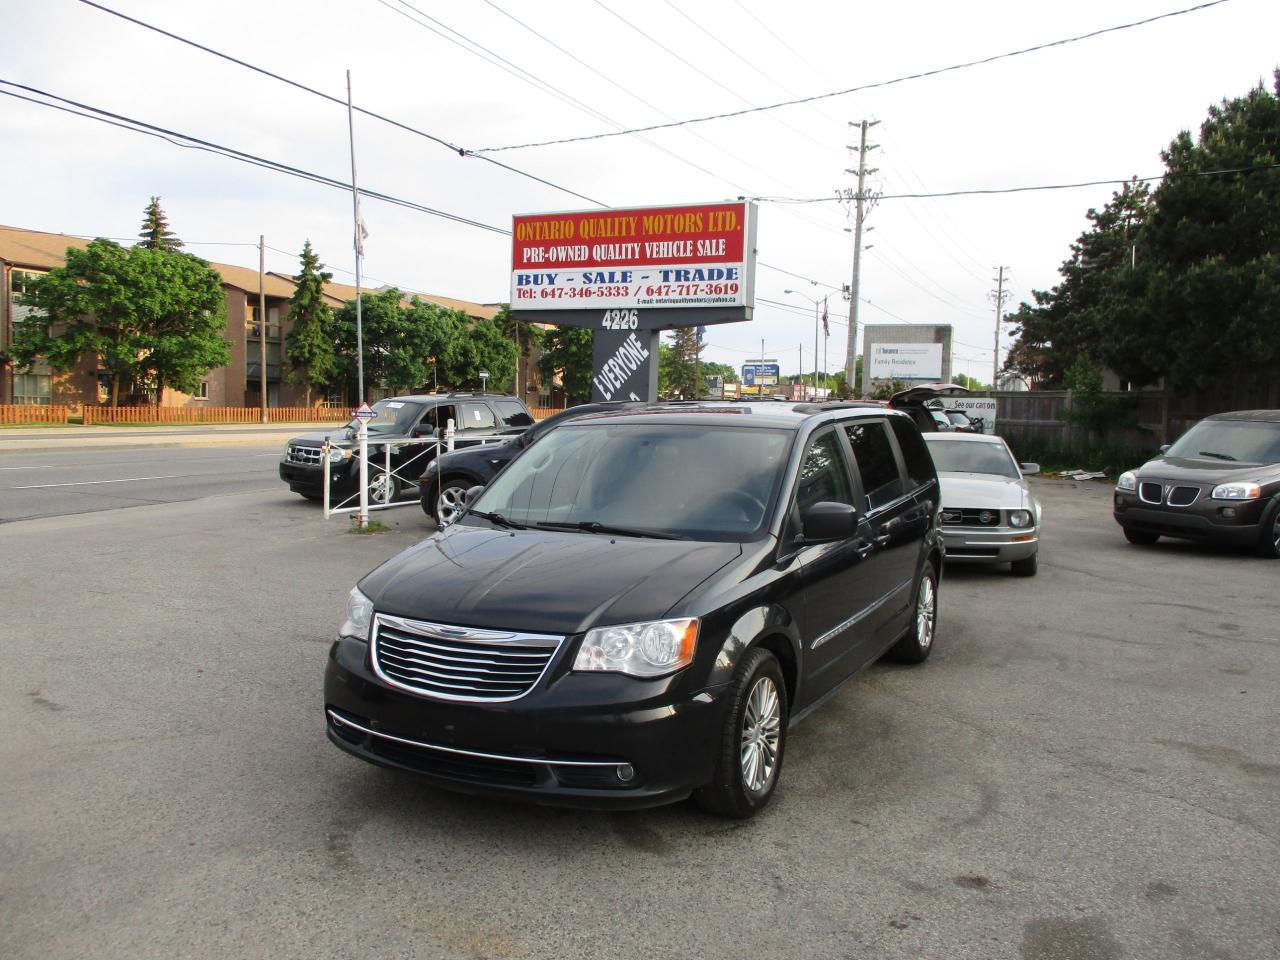 htm and finance image exterior main ny prices town country cicero tnc offers lease ext deals new chrysler